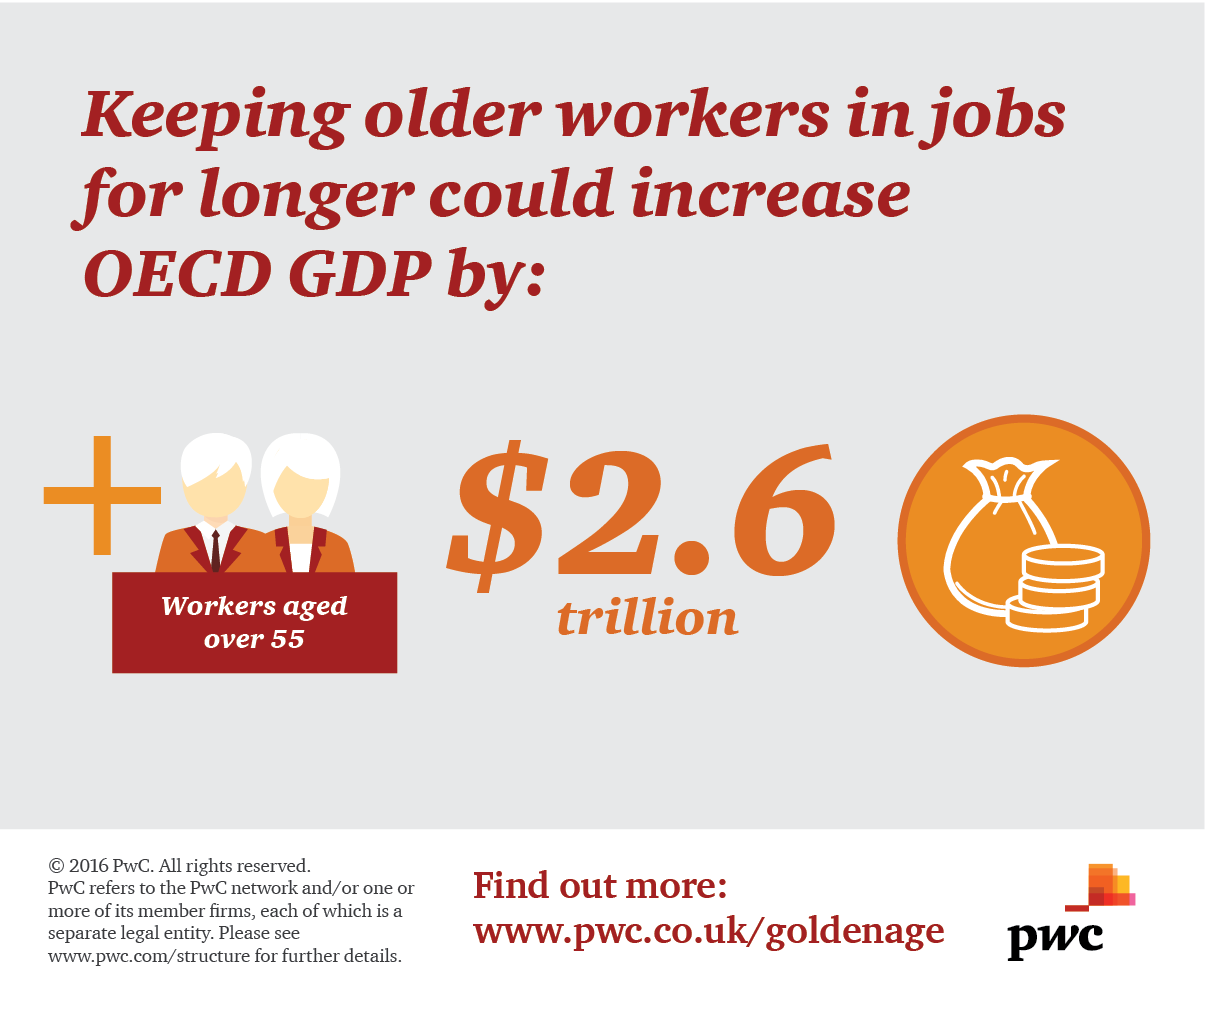 how can public policy harness the power of older workers global of course the potential gdp boost from increasing the employment rates of 55 64 year olds and people aged 65 varies significantly across countries